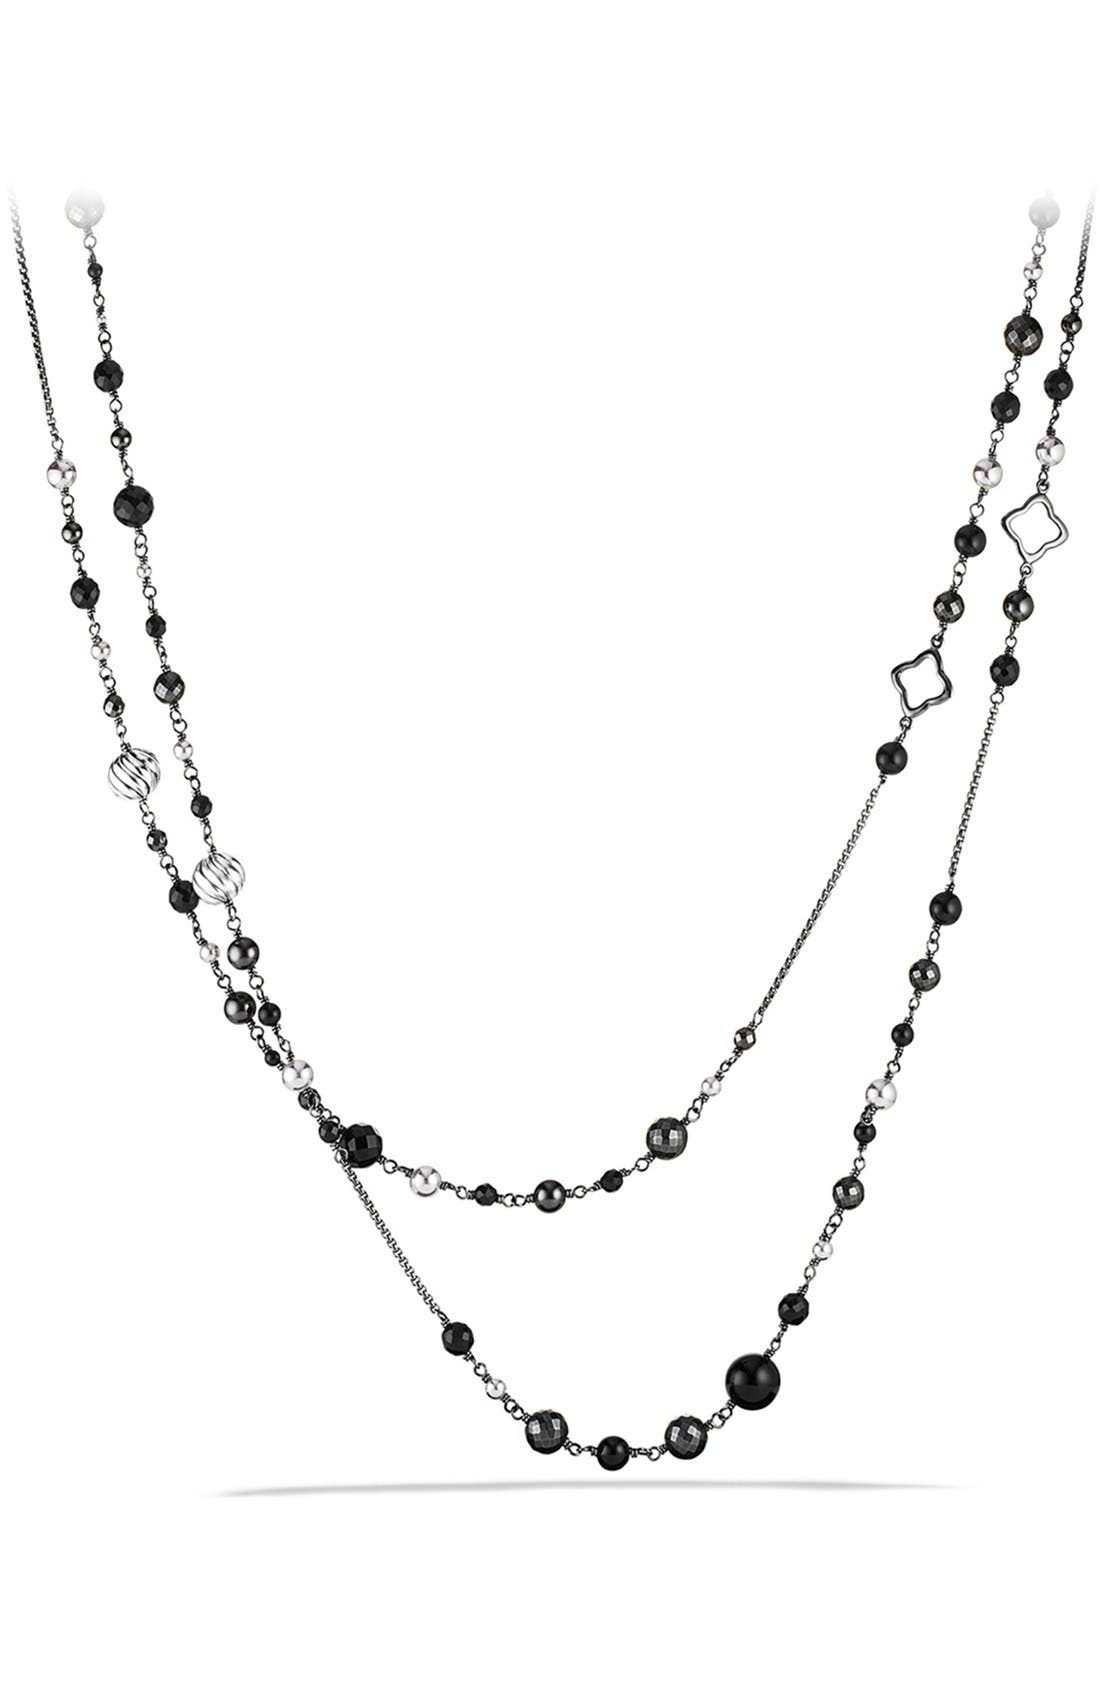 David Yurman 'DY Elements' Chain Necklace with Black Onyx and Hematine